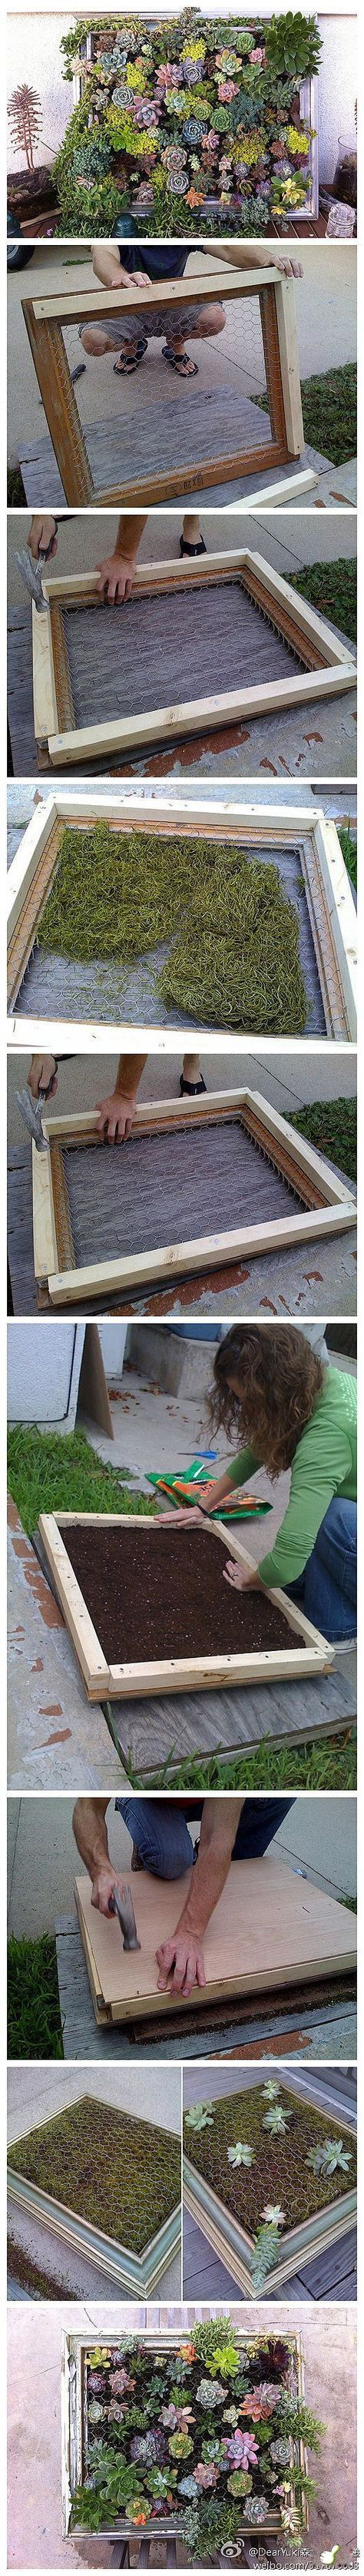 Succulent frame... been trying to figure out something cool to hang on the fence. These could be fun :):